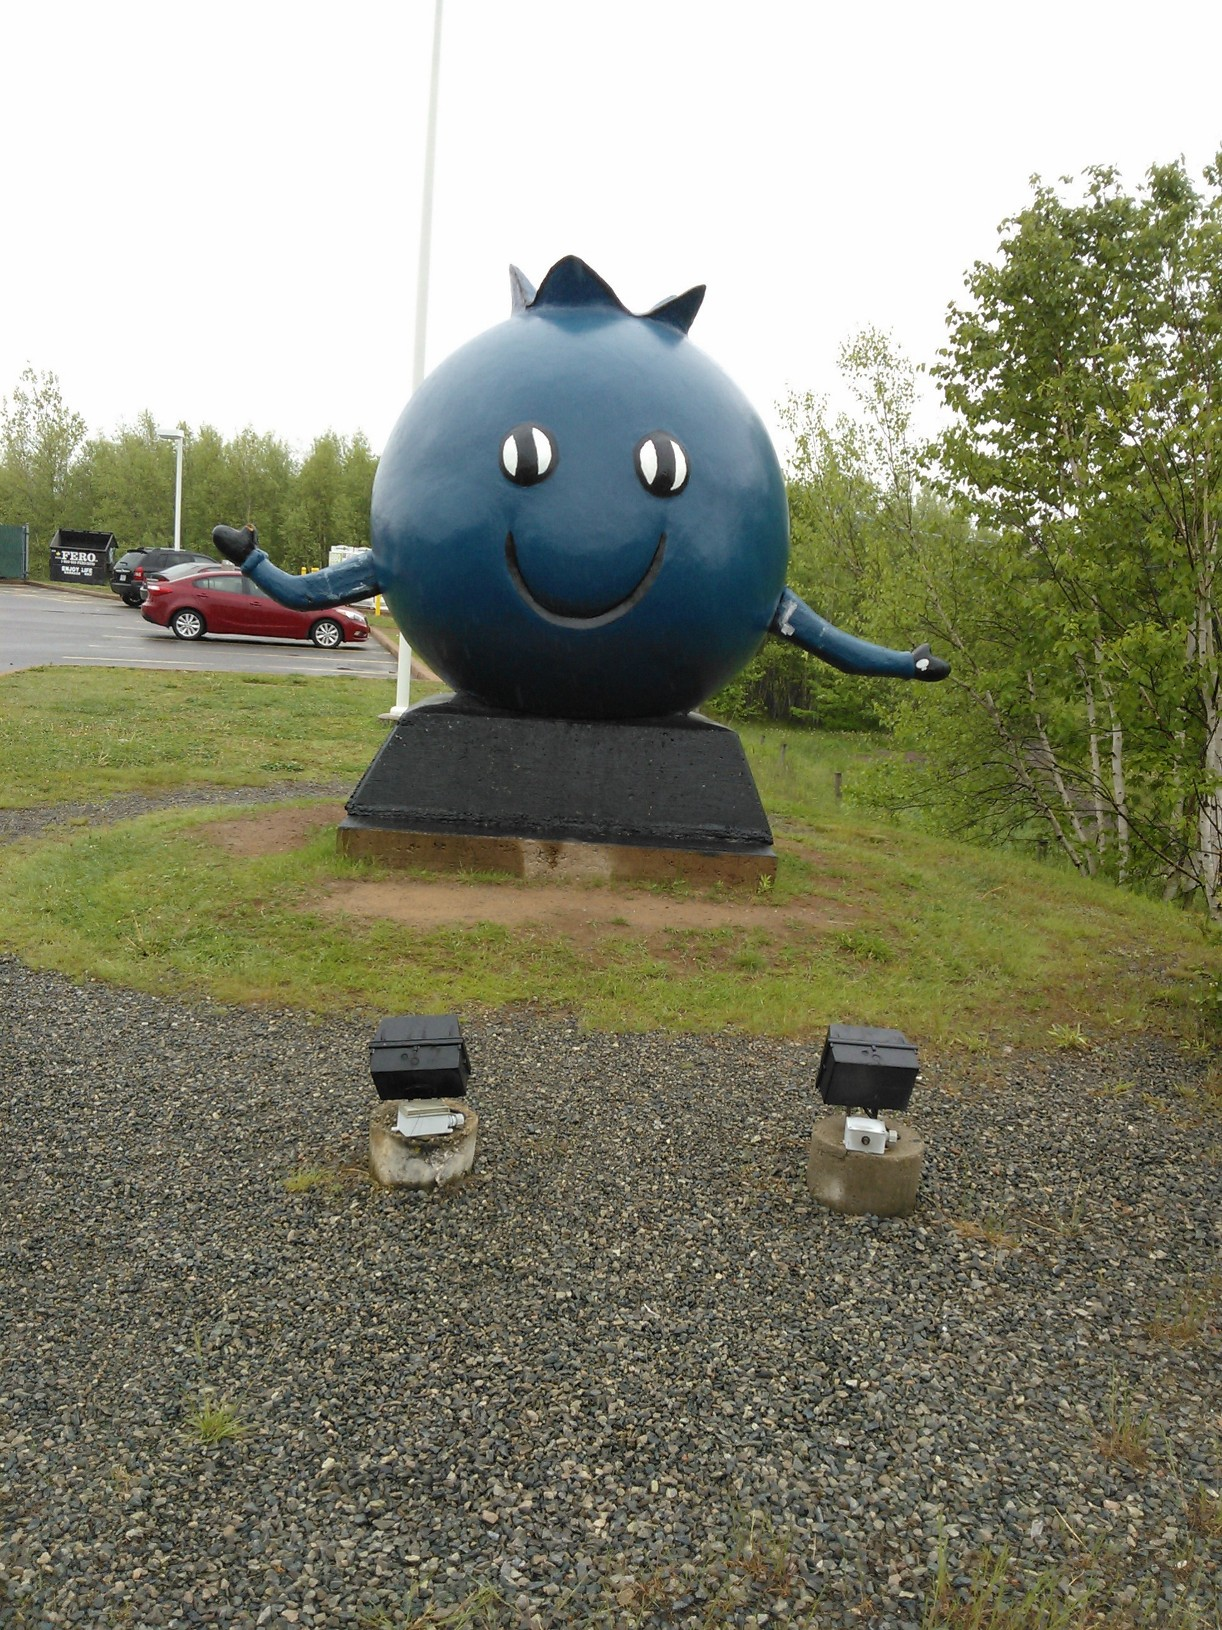 World's Largest Blueberry - Oxford, Nova Scotia